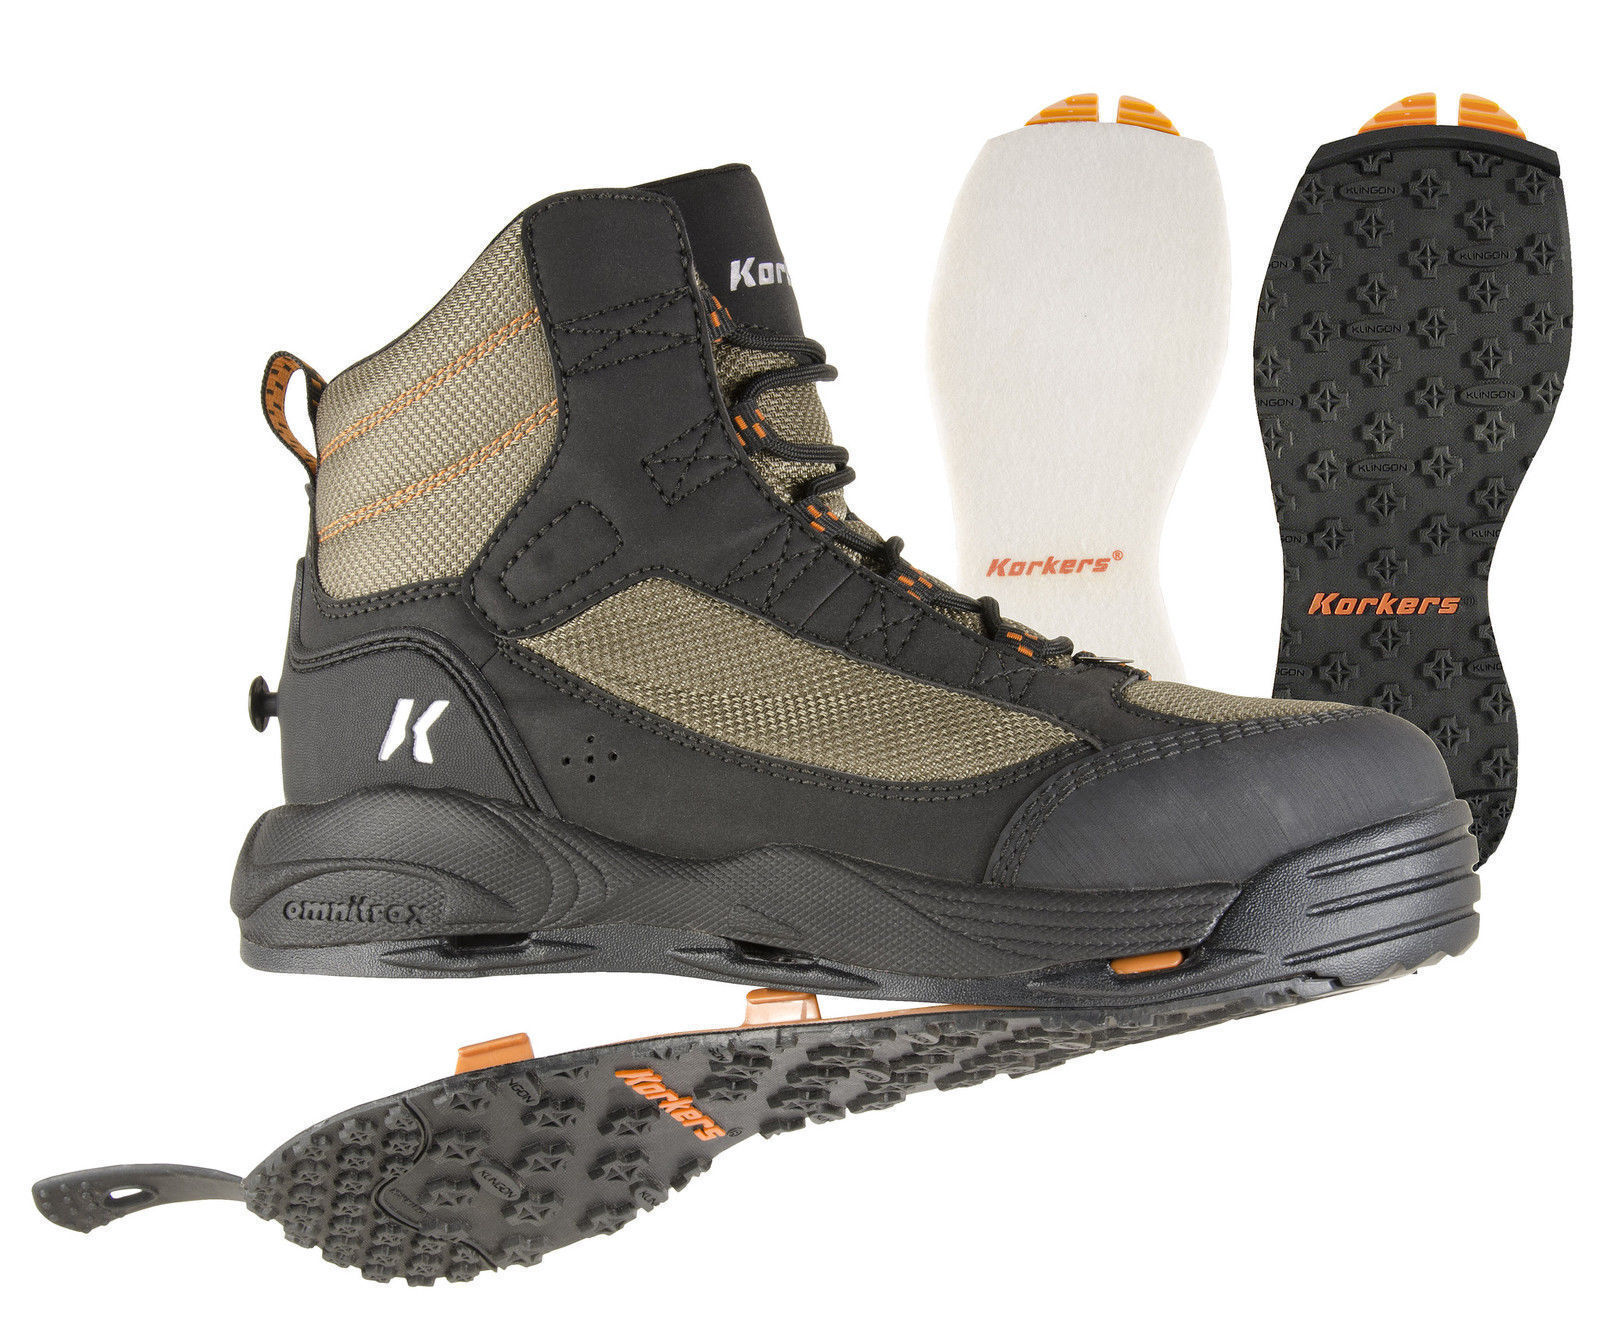 Korkers Wraptr Wading Boot Felt//Kling On Soles Closeout Multiple Sizes